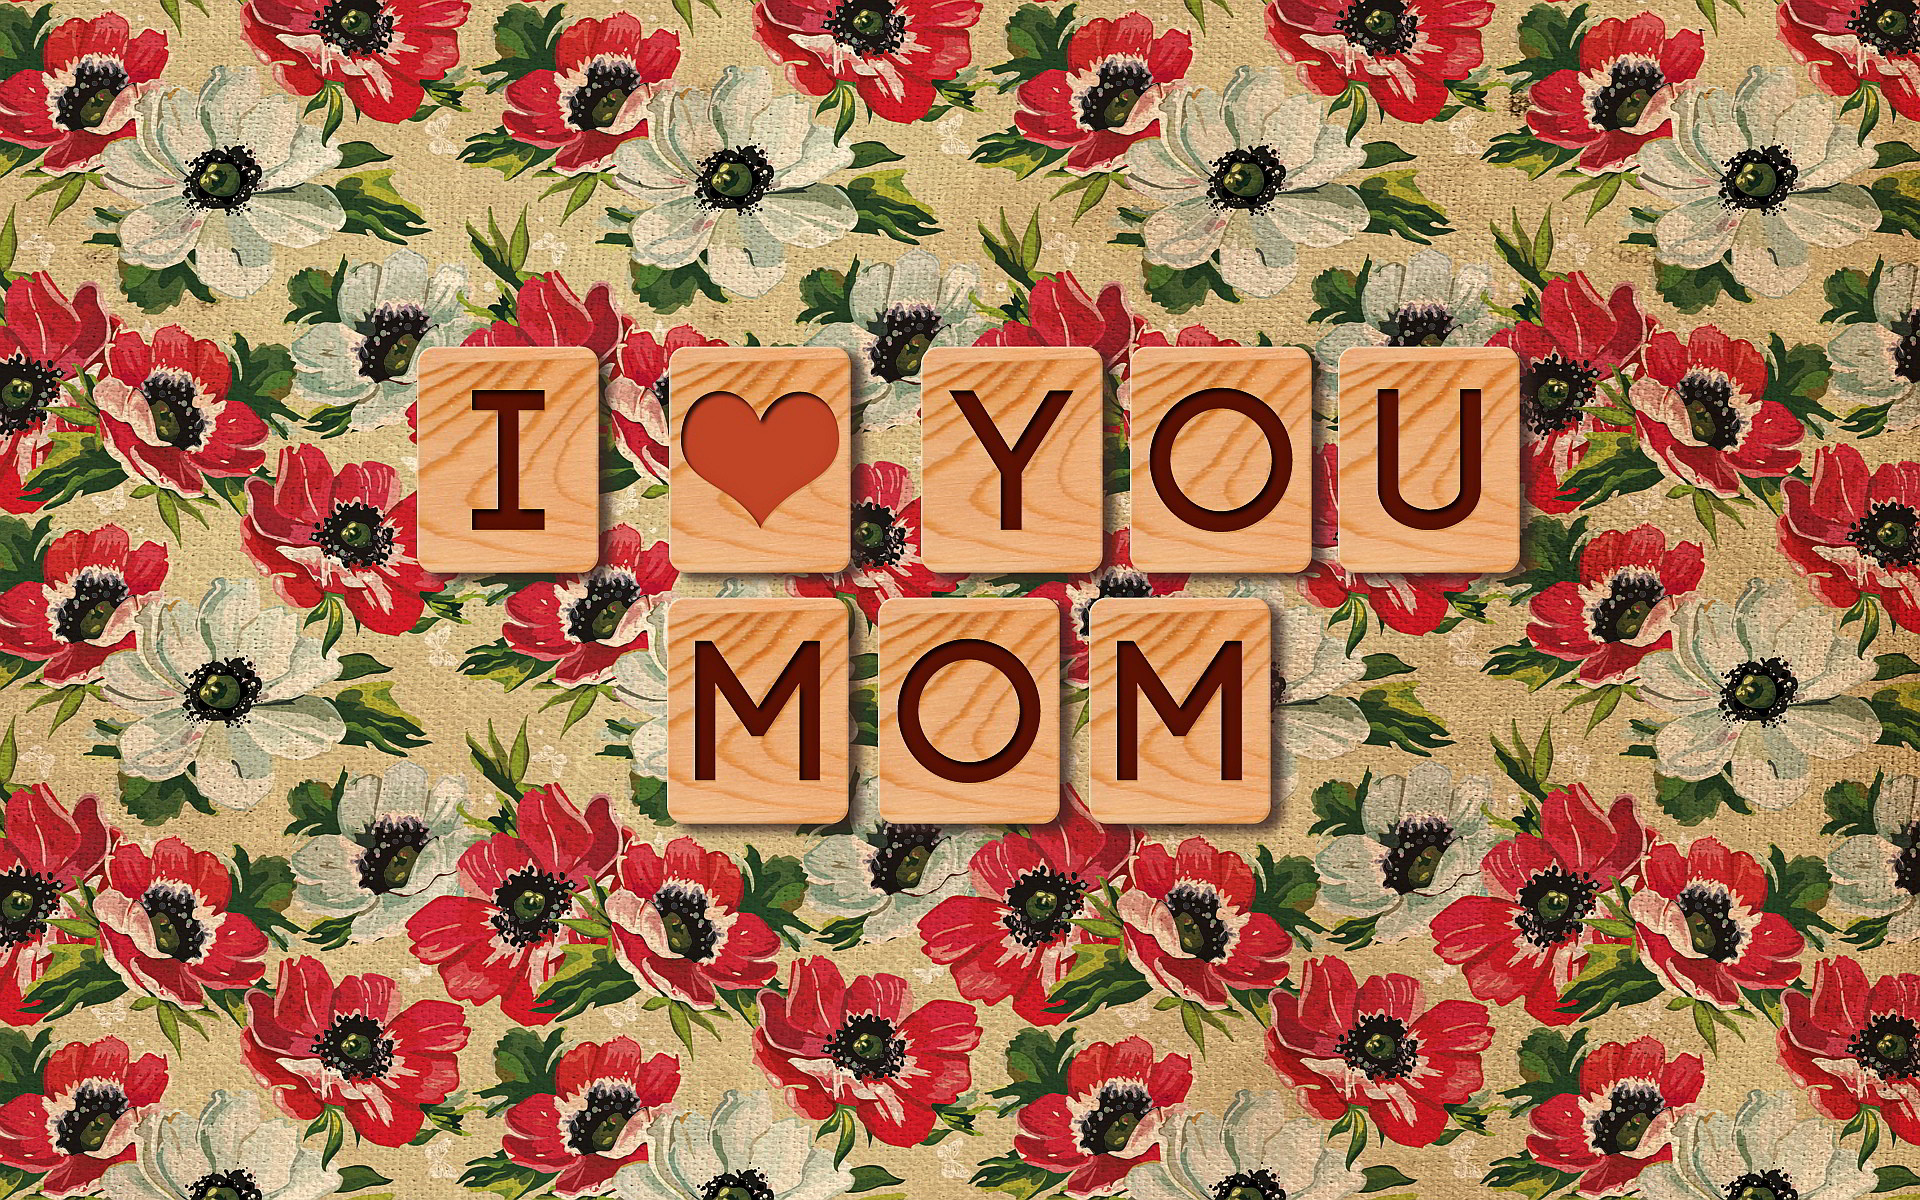 1920x1200 I Love You Mom Wallpapers Images Photos Hd Wallpapers Tumblr Pinterest  Istagram Whatsapp Imo Facebook Twitter - Heart Touching Fashion Summary  Amazon Store